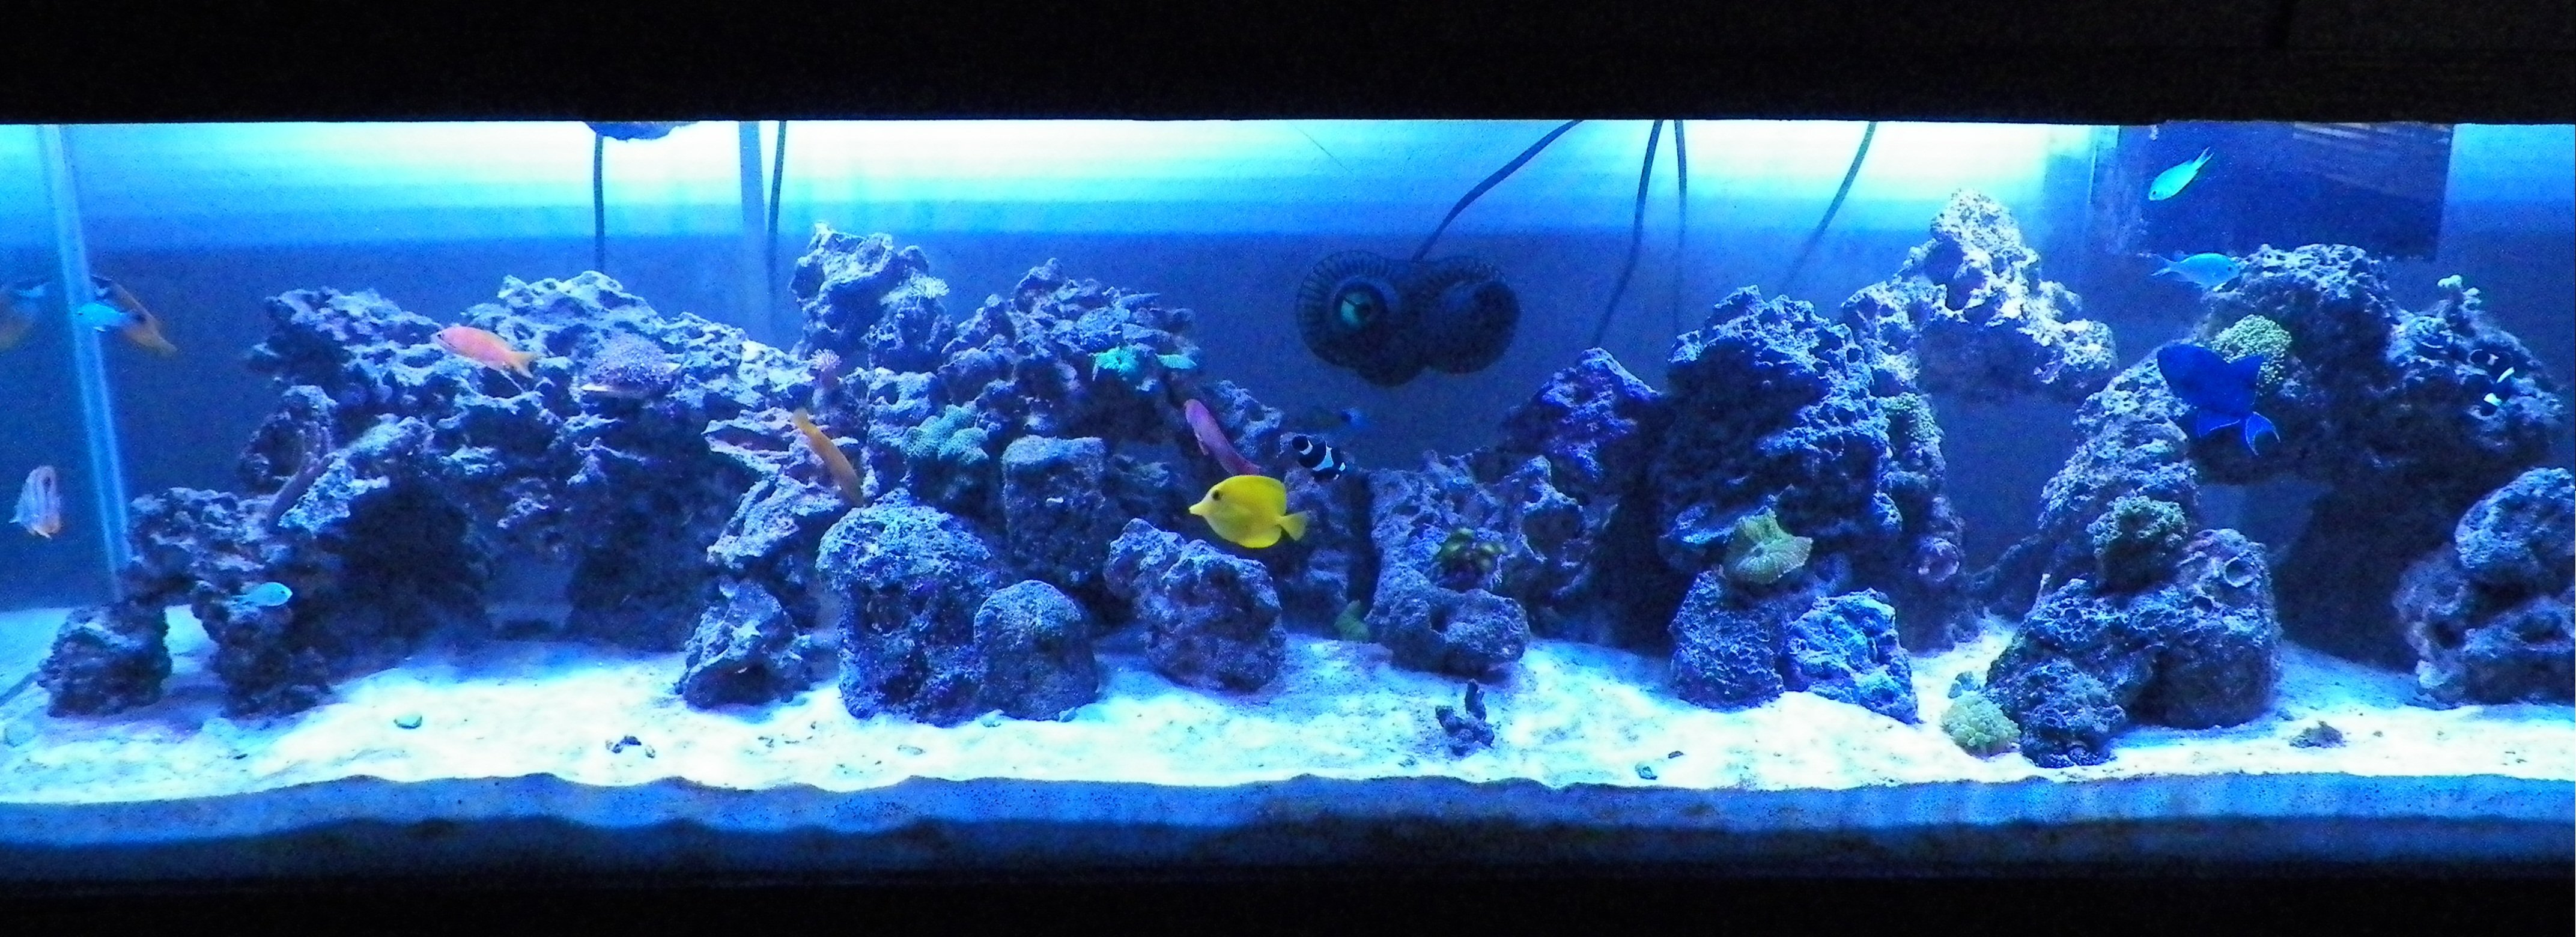 My 125 gallon reef tank saltwaterfish forum for 20 gallon saltwater fish tank